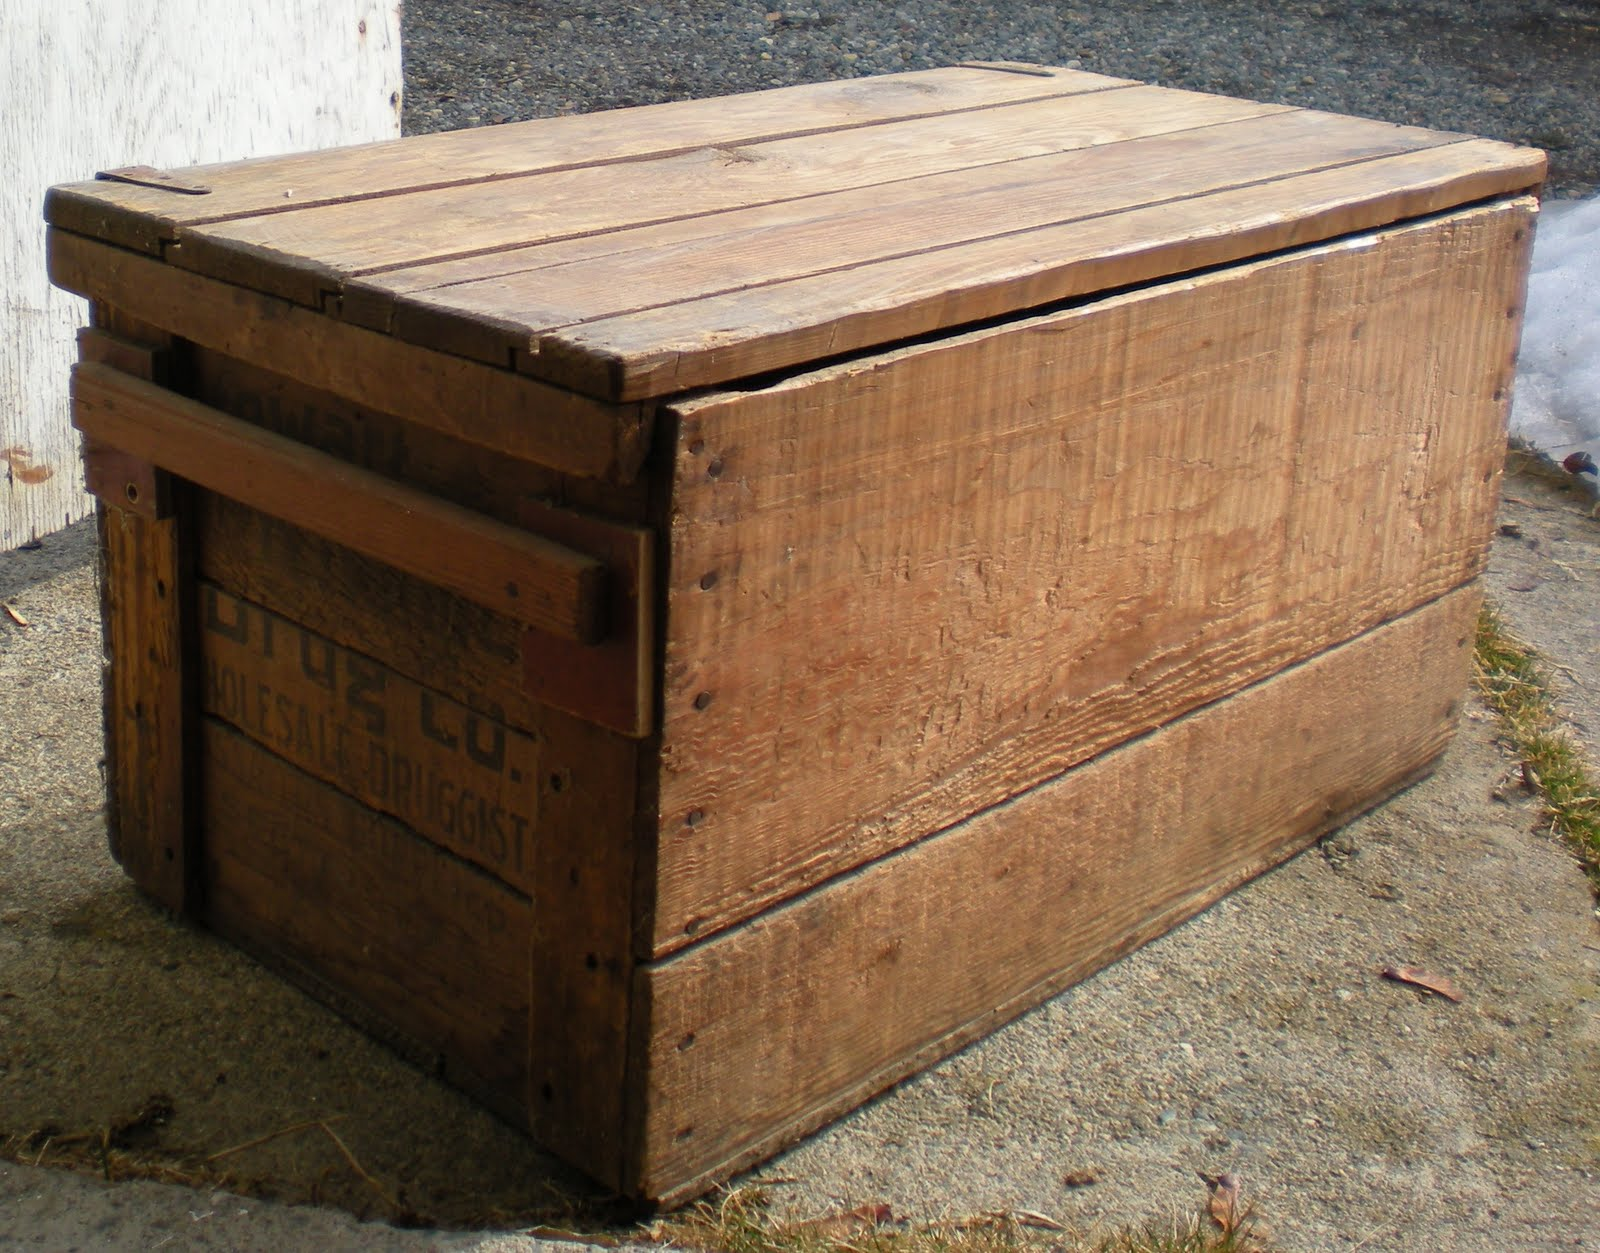 the gallery for old wood crate